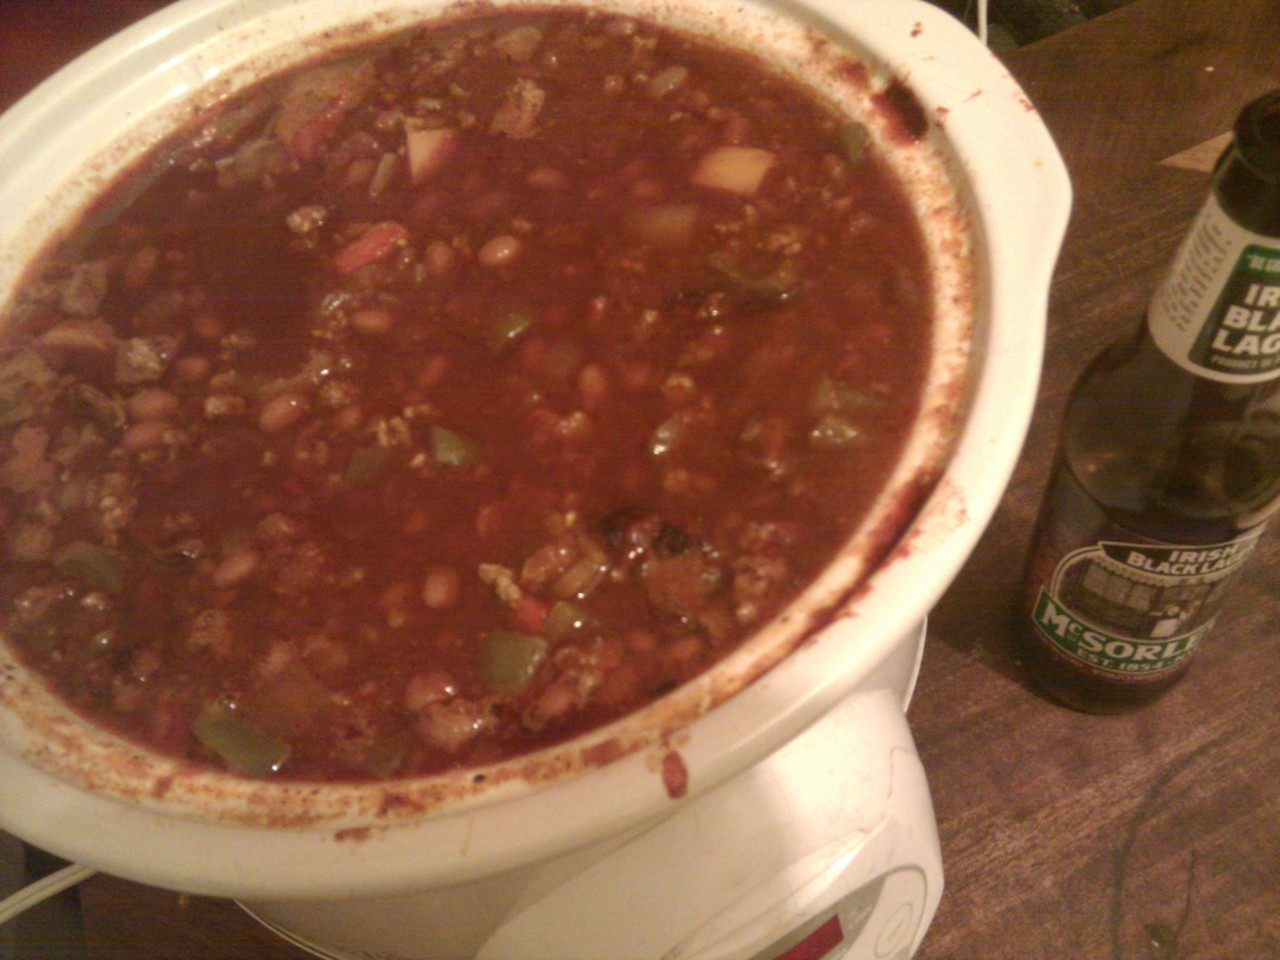 I am making a fuckload of yummy chili. wsup